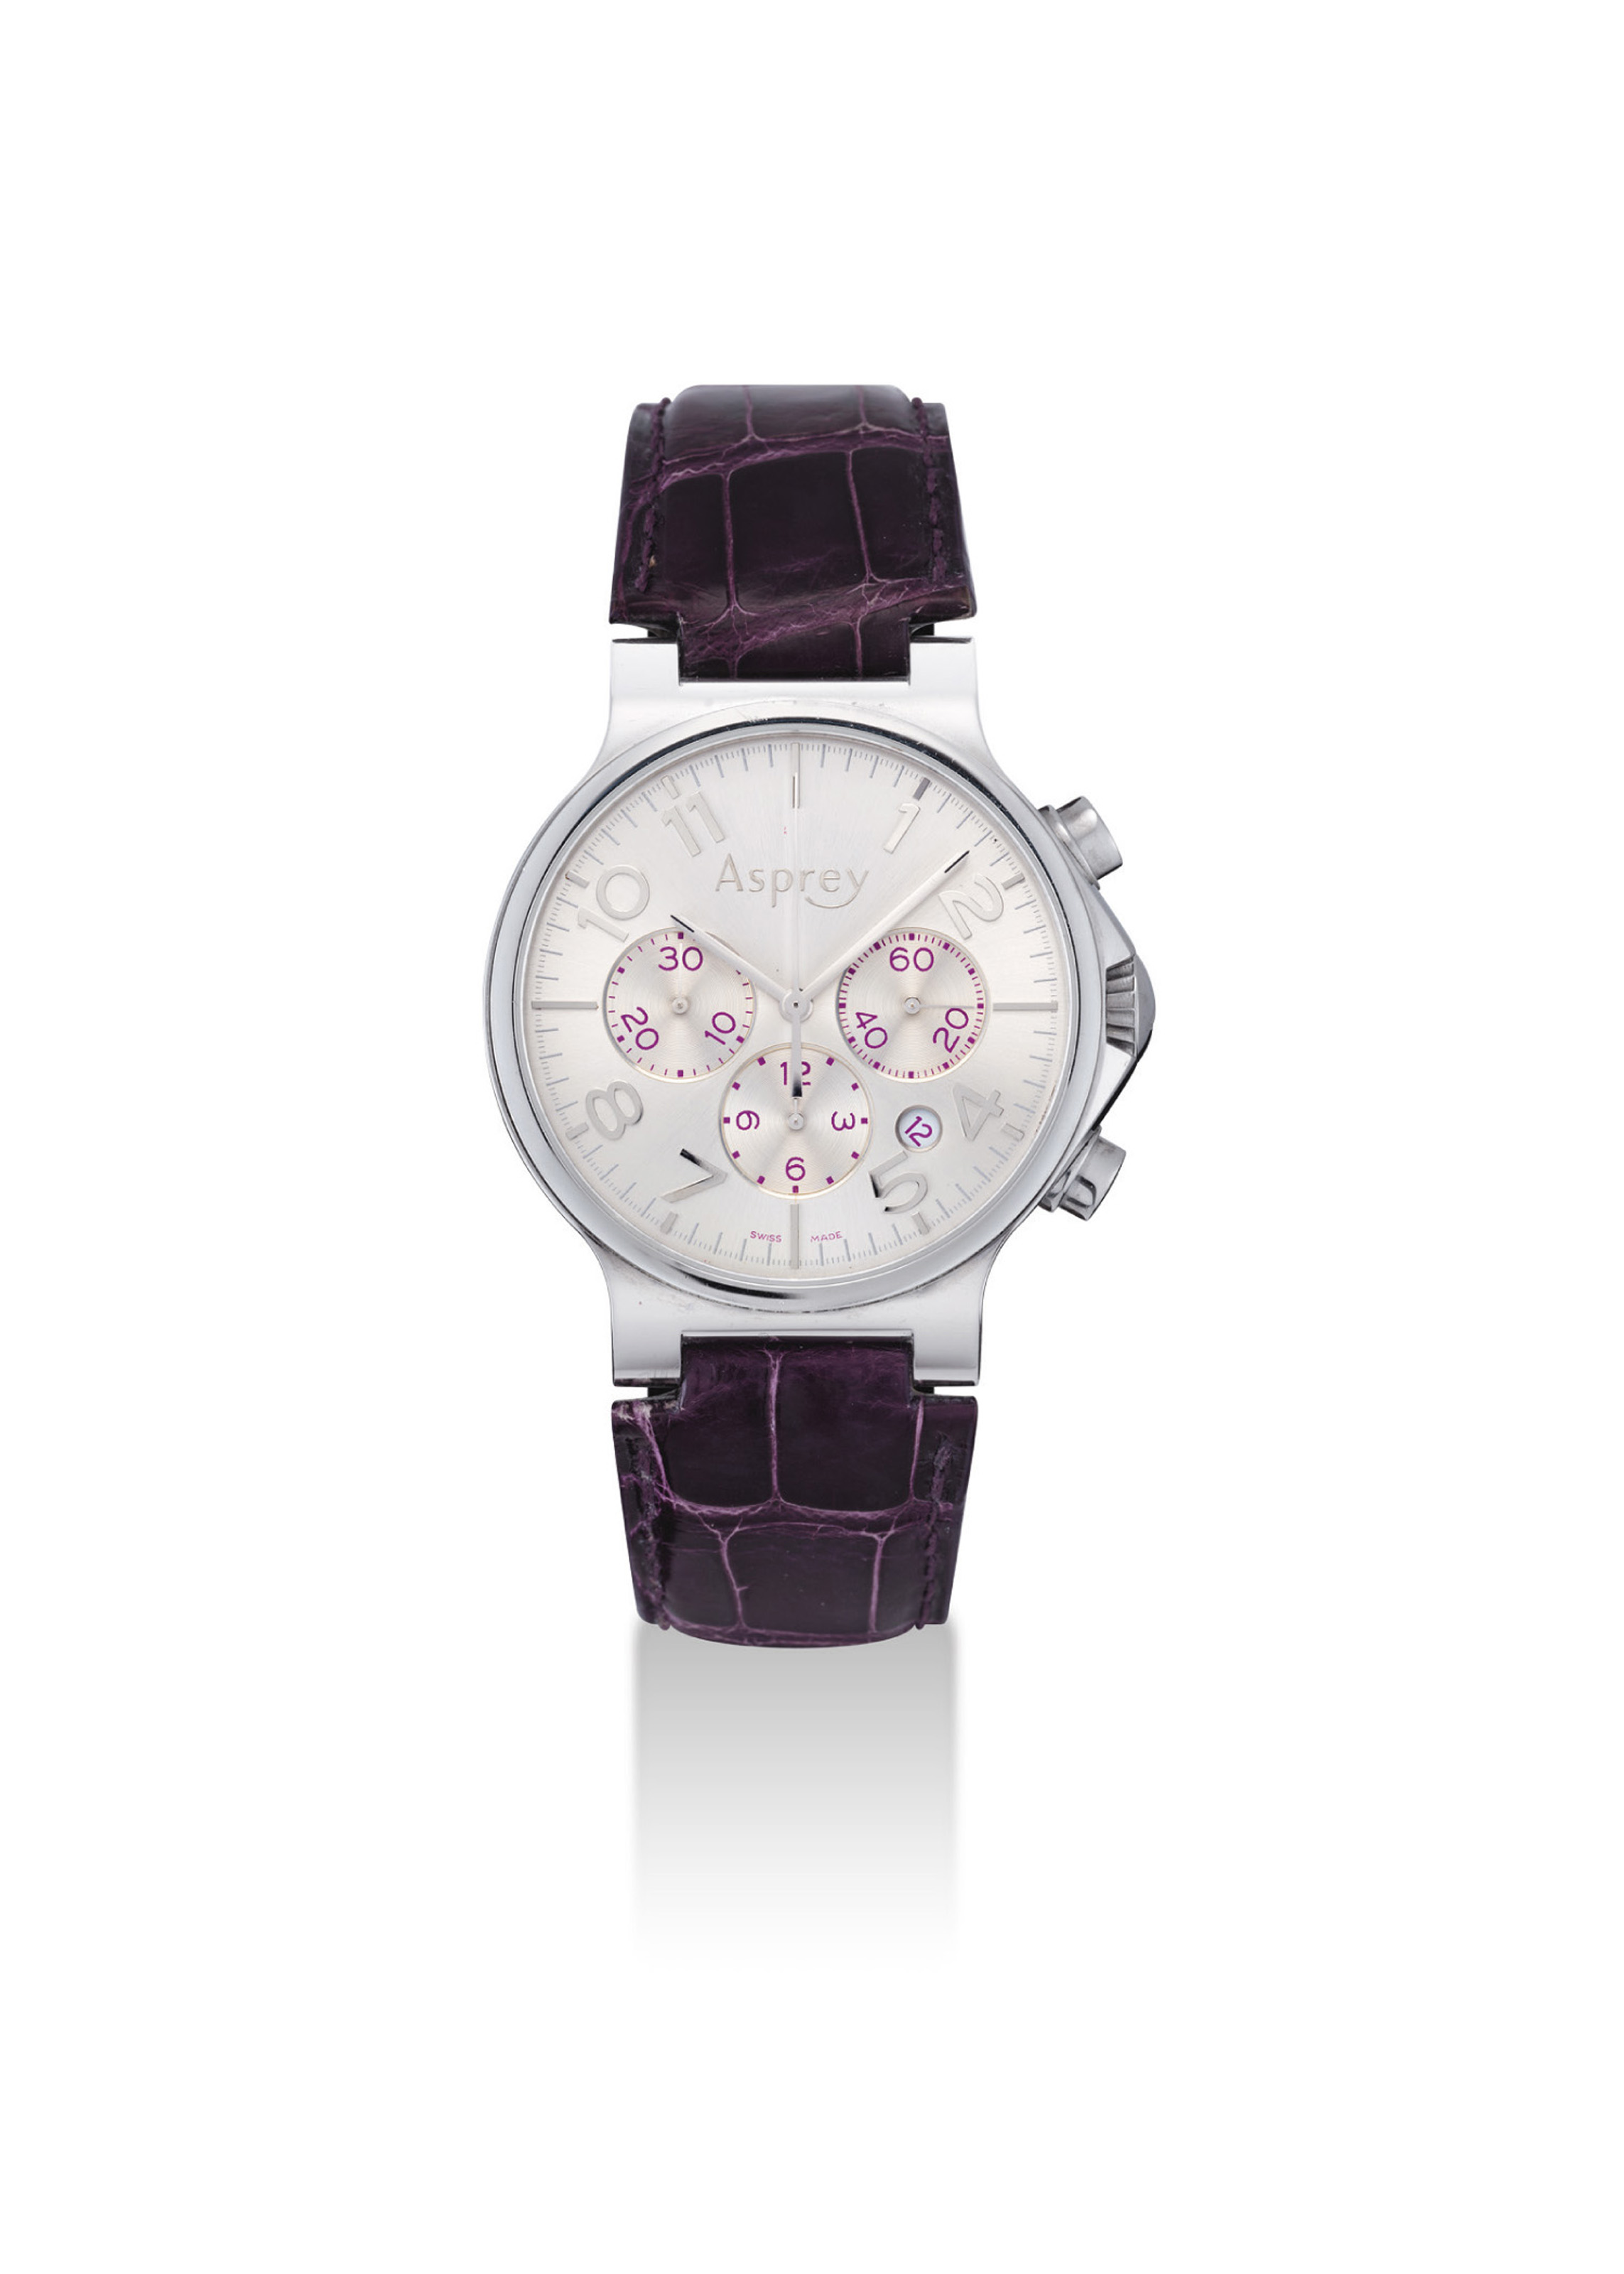 ASPREY. A STAINLESS STEEL AUTOMATIC CHRONOGRAPH WRISTWATCH WITH DATE